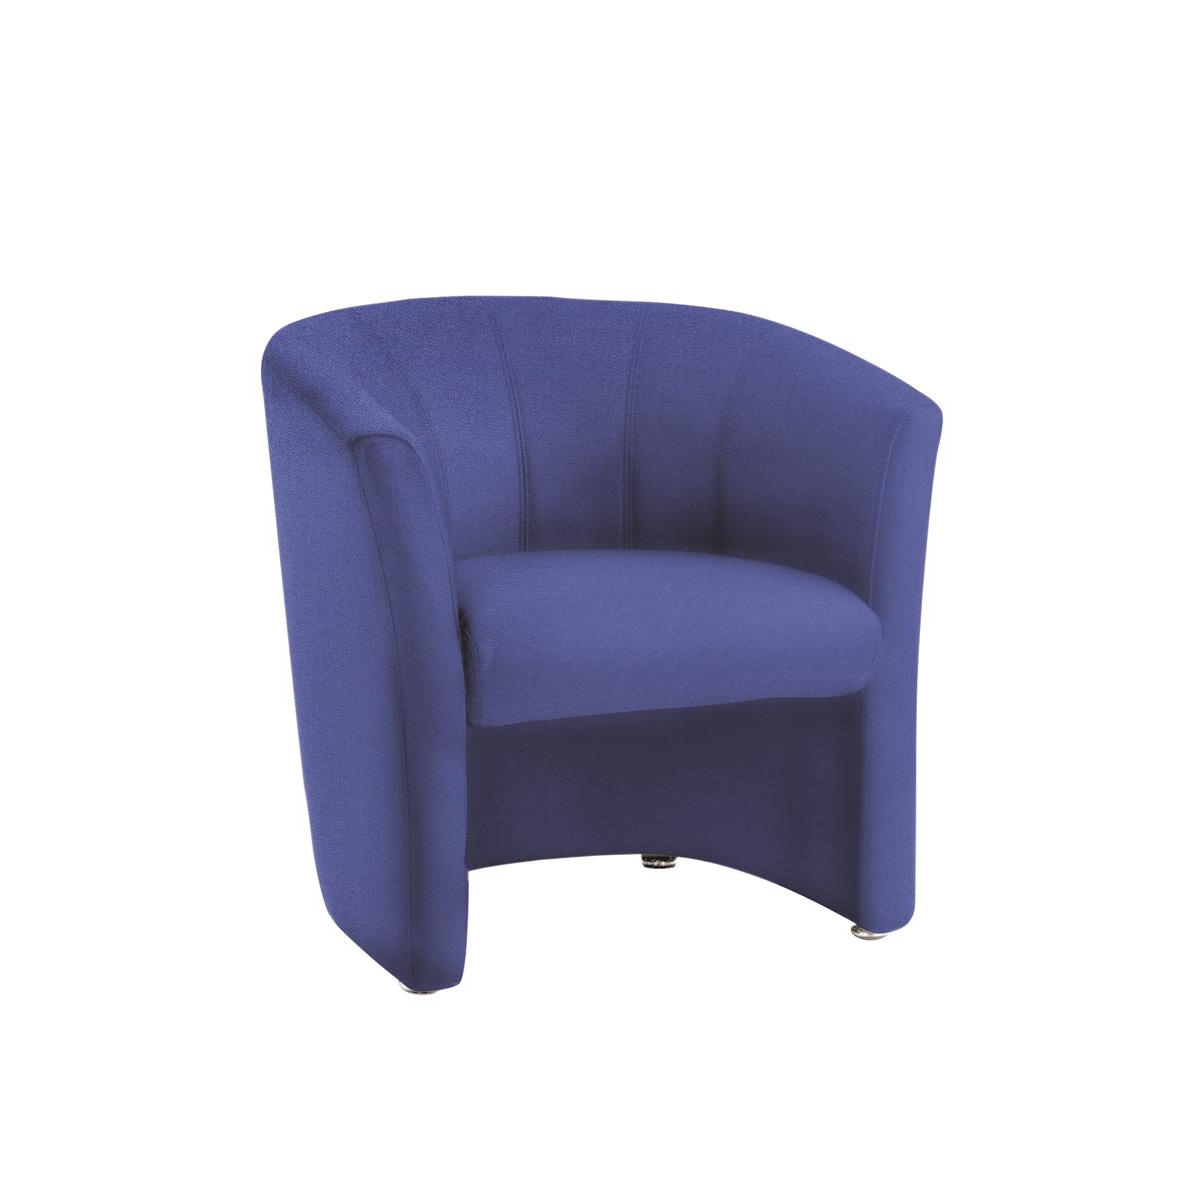 #Trexus Tub Arm Chair Blue 450x480x460mm Ref BR000101